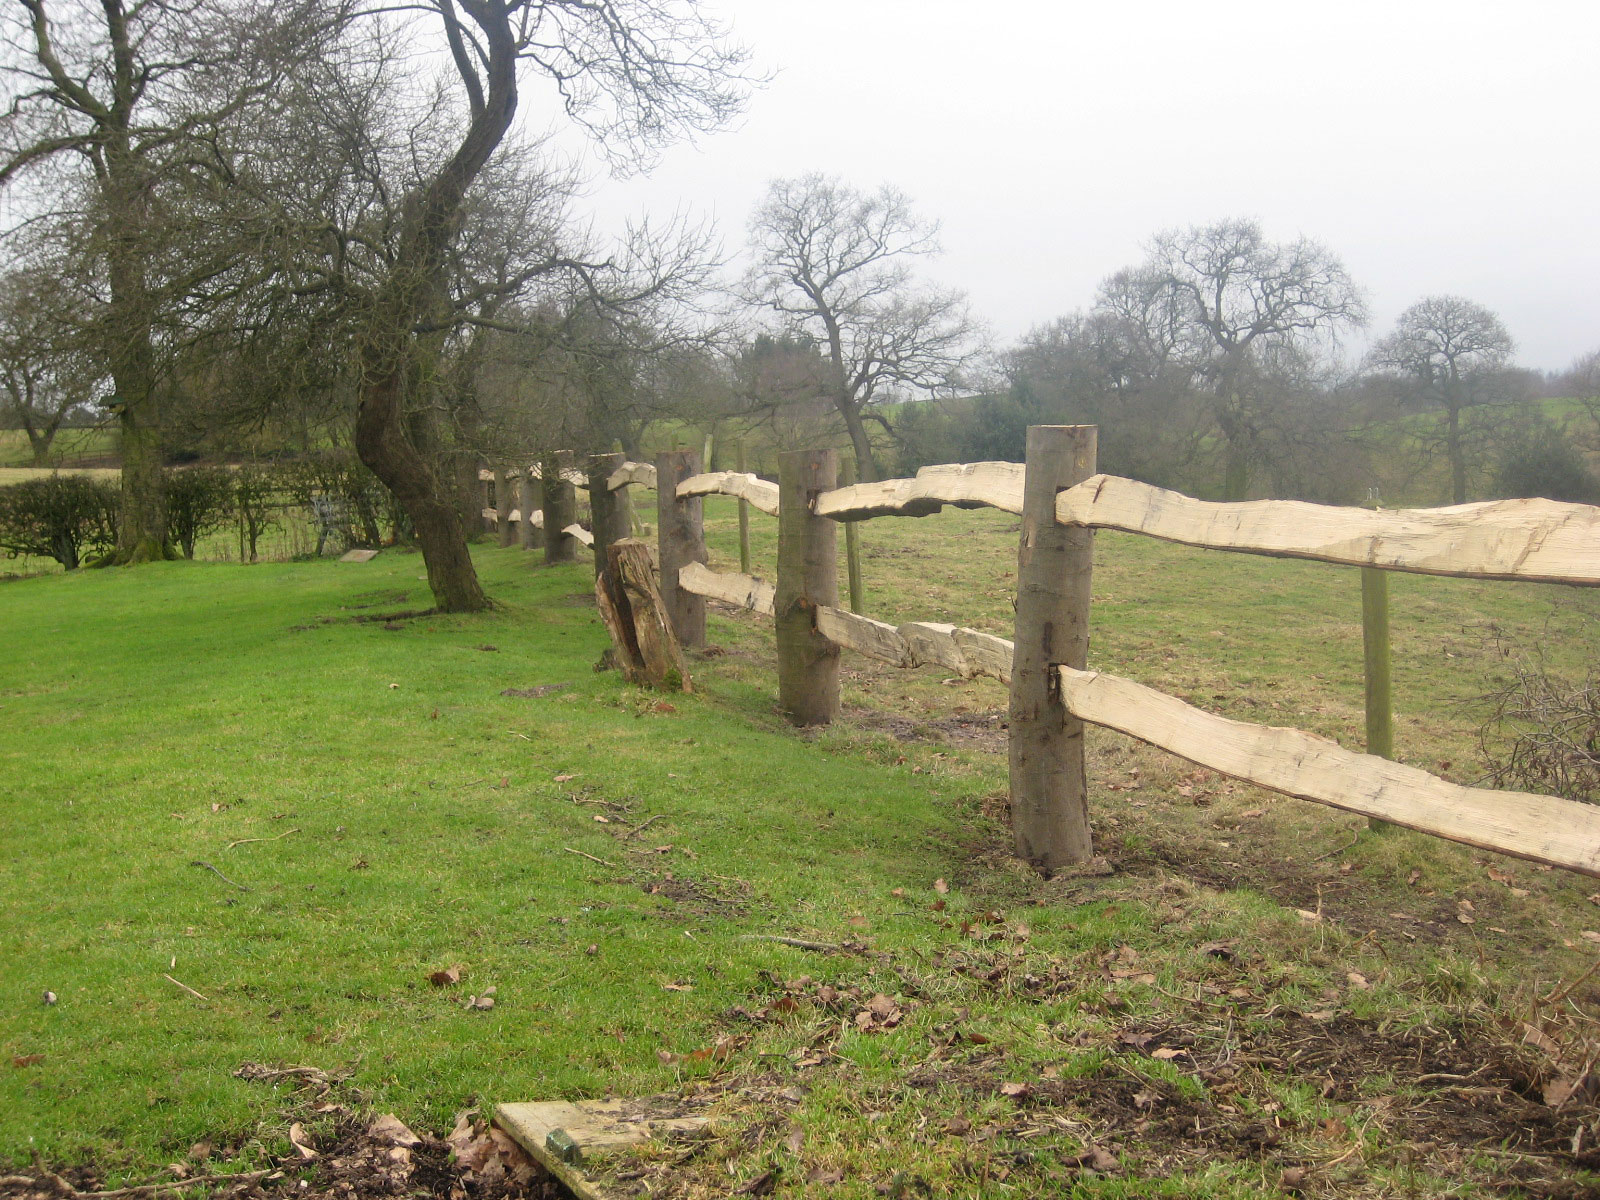 <span>Ref: A10</span><br>Traditional cleft fencing fits well in a rural setting of woods, field and hedgerows. Top rail at 4', materials approx £14.74/metre inc. VAT